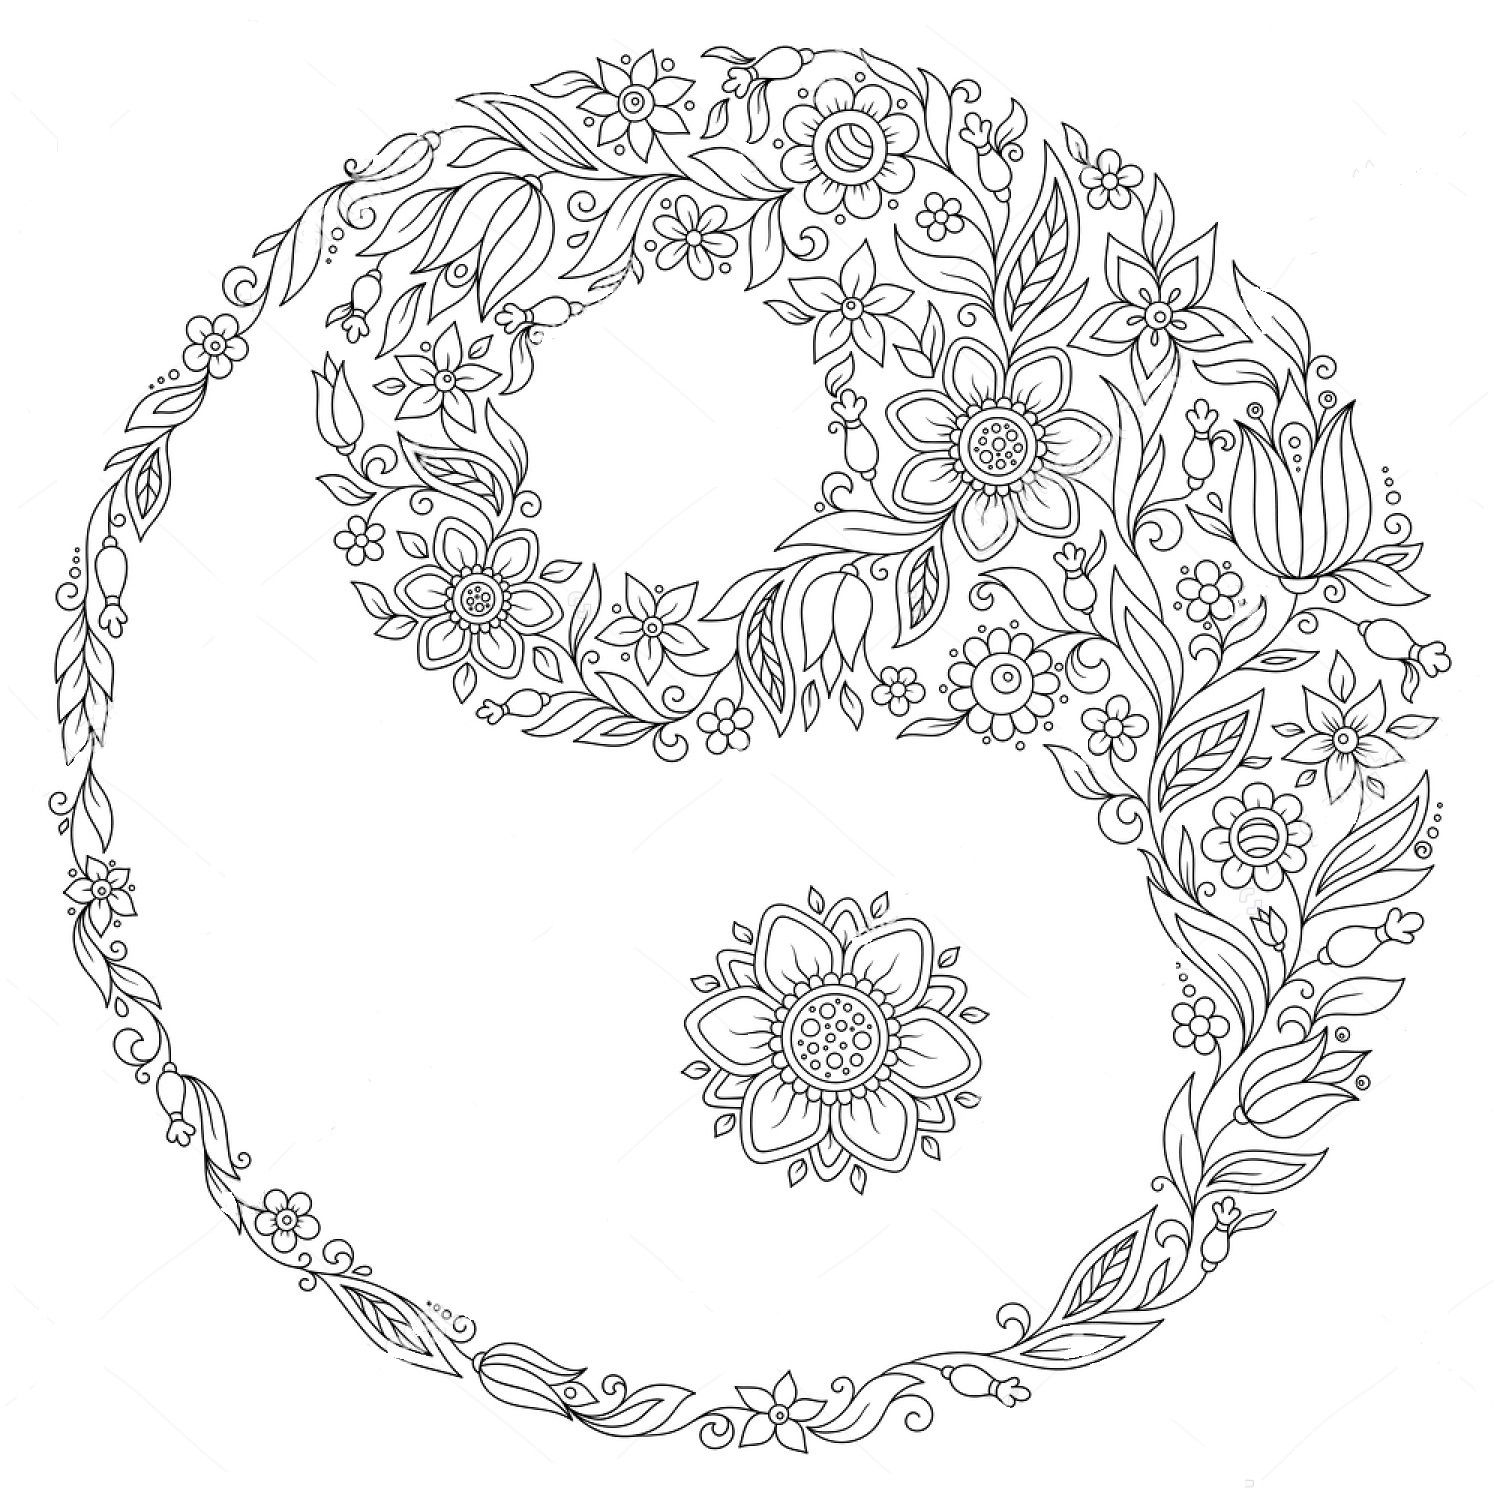 Yin Yang Zentangle Coloring Page Paper Crafting Pinterest